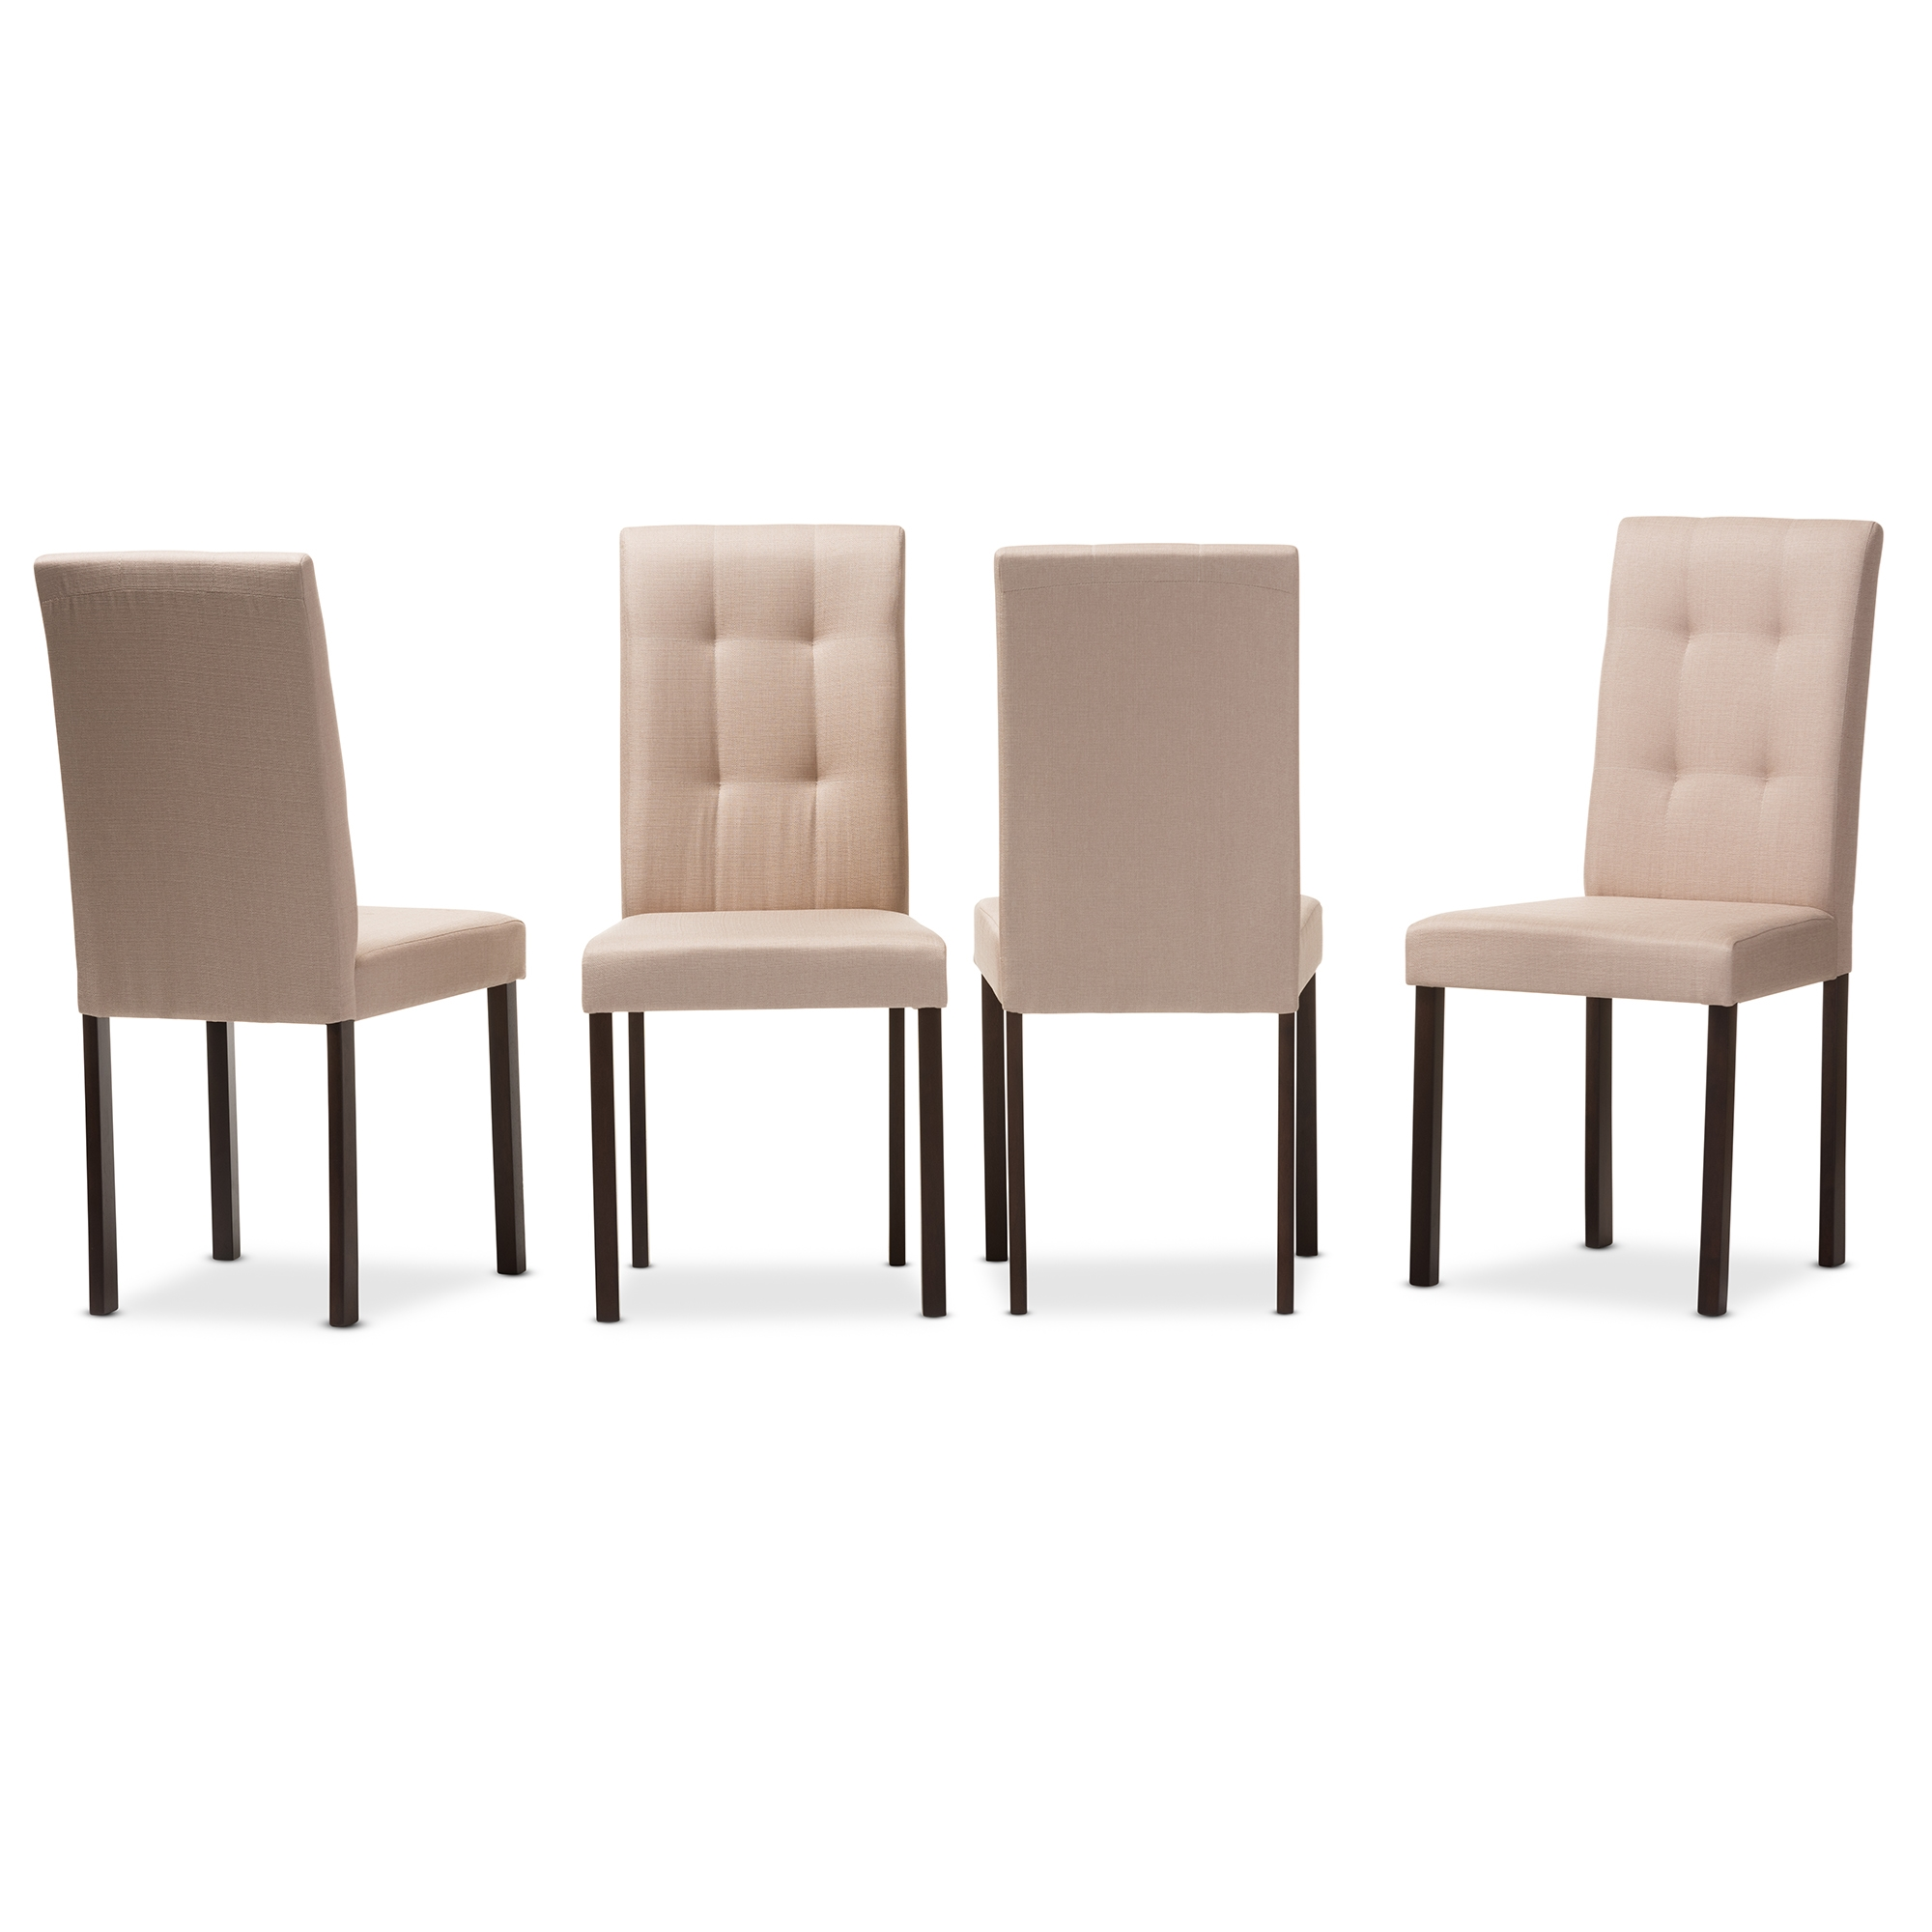 upholstered tufted dining chairs modern baxton studio andrew modern and contemporary beige fabric upholstered gridtufting dining chair ieandrew